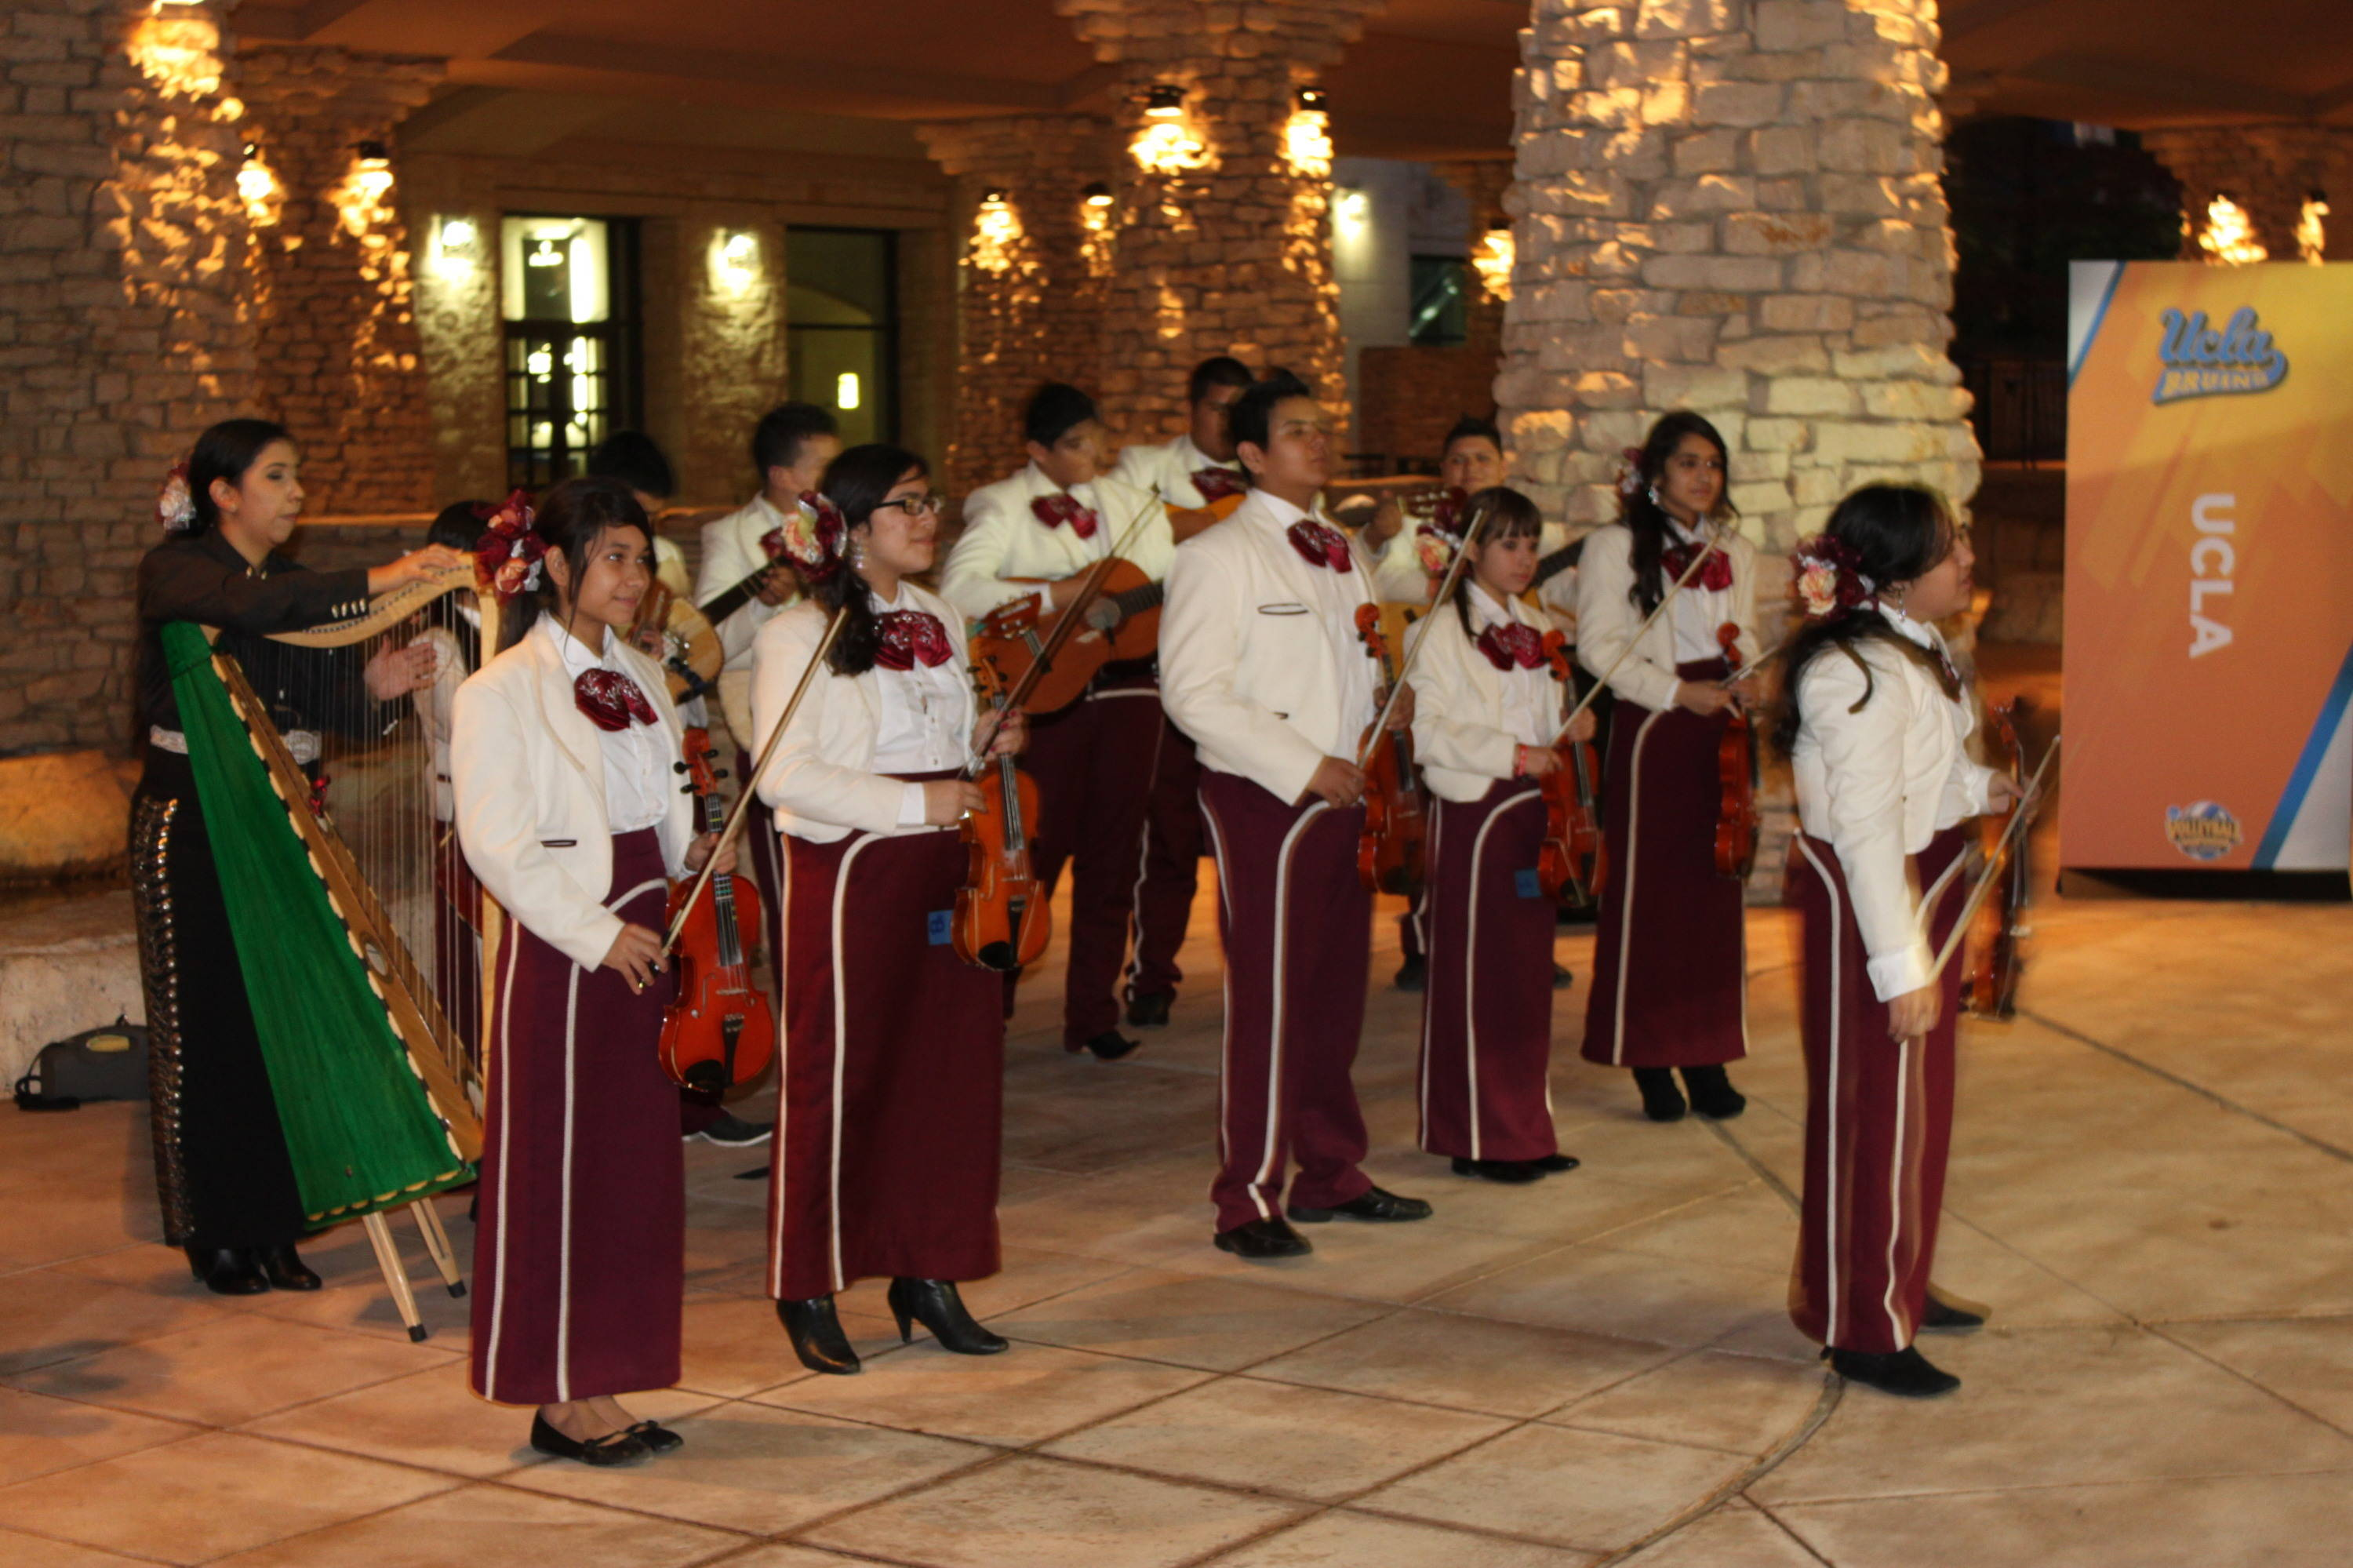 Another mariachi band performs for everyone heading into the banquet. This one is a group from a local middle school.